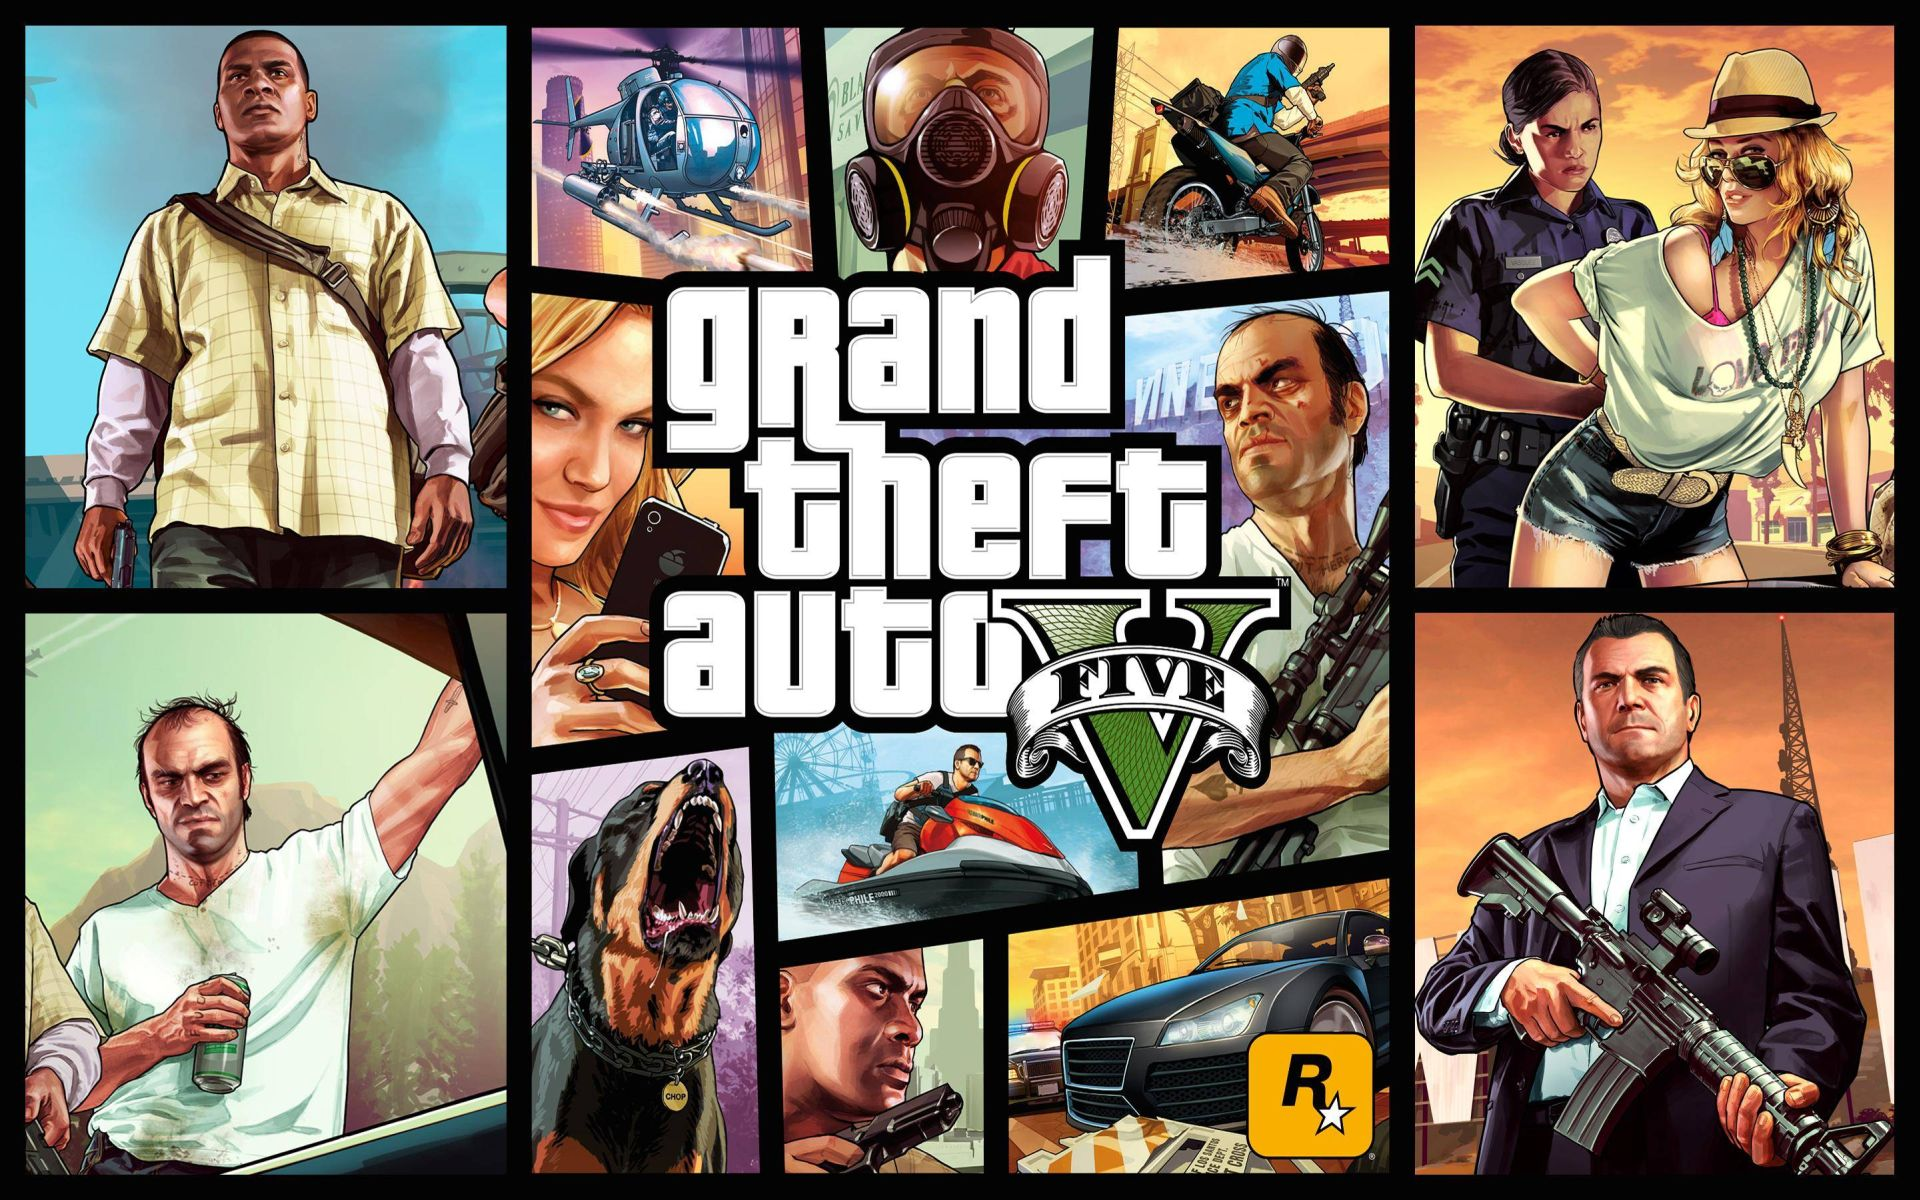 AMD Prepares for Grand Theft Auto V - Download Catalyst 15 4 Beta